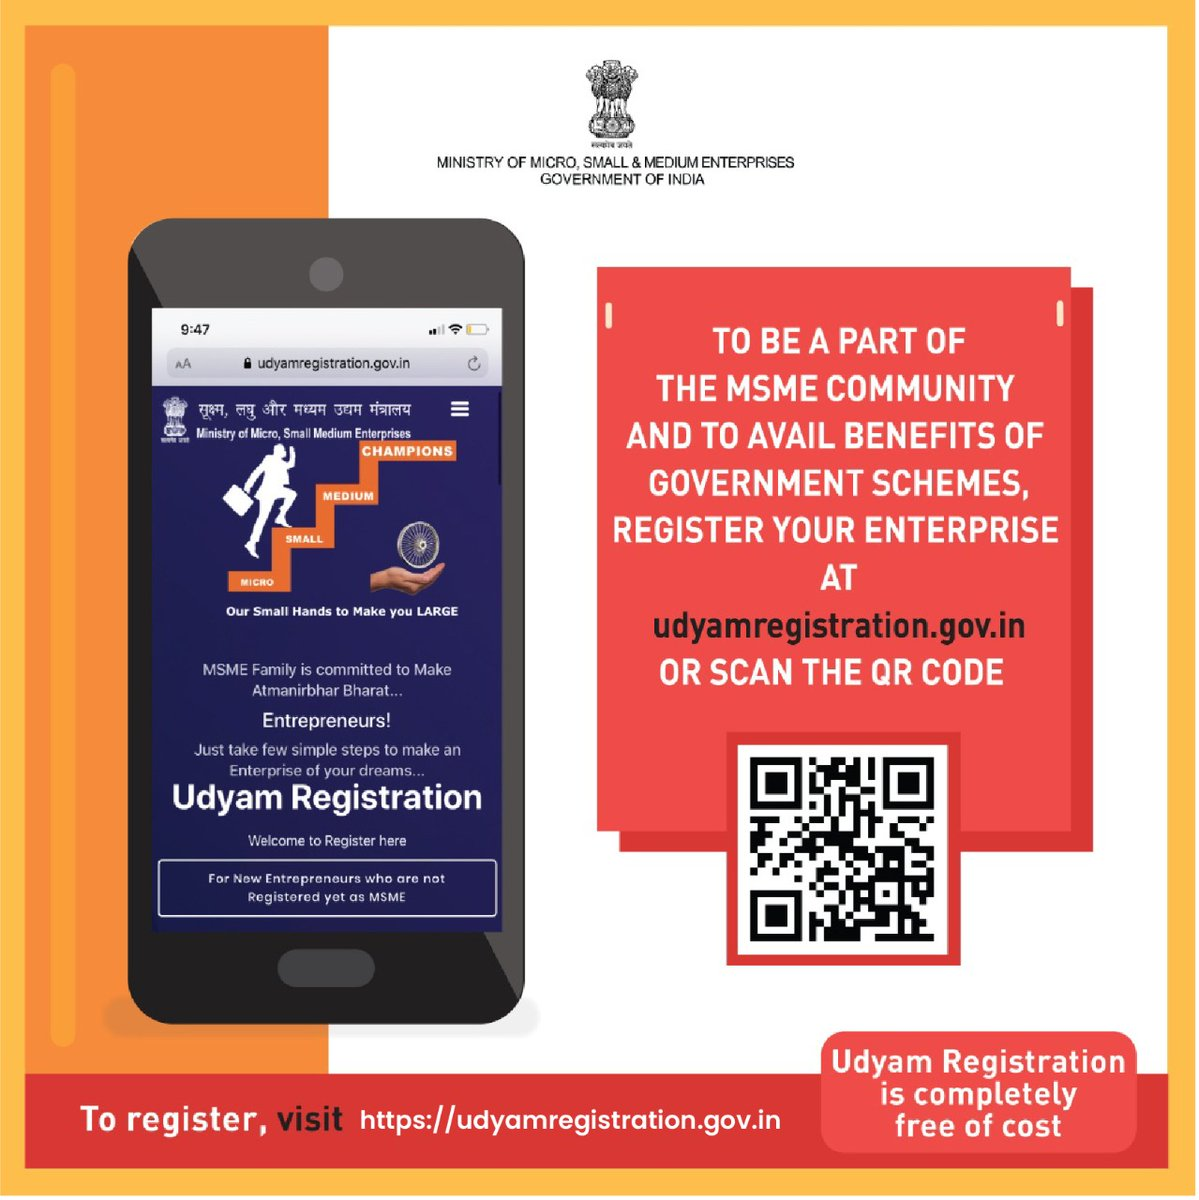 Congrats! Over 7 lakh registrations have taken place in three months as per new criteria & system of MSME / Udyam registration. Over 1 lakh old UAM holders have also migrated to new system. It's working seamlessly. Register yourself for #MSMEtochampions. @PIB_India https://t.co/X9ZmsqtbPh